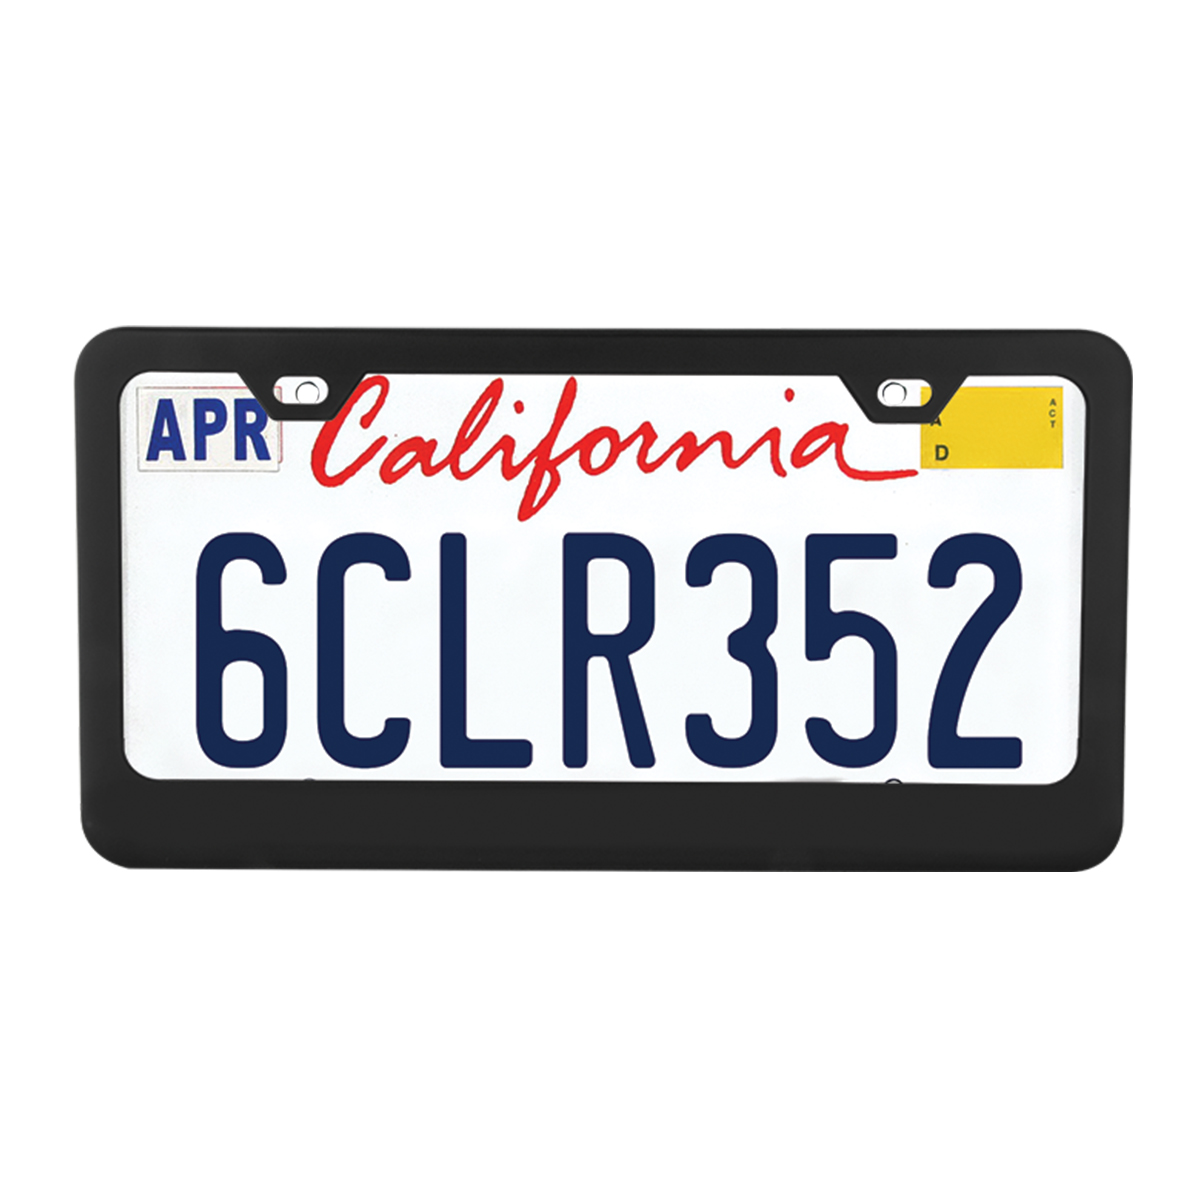 60439 Flat/Matte Plain Black 2 Hole License Plate Frame - Profile View